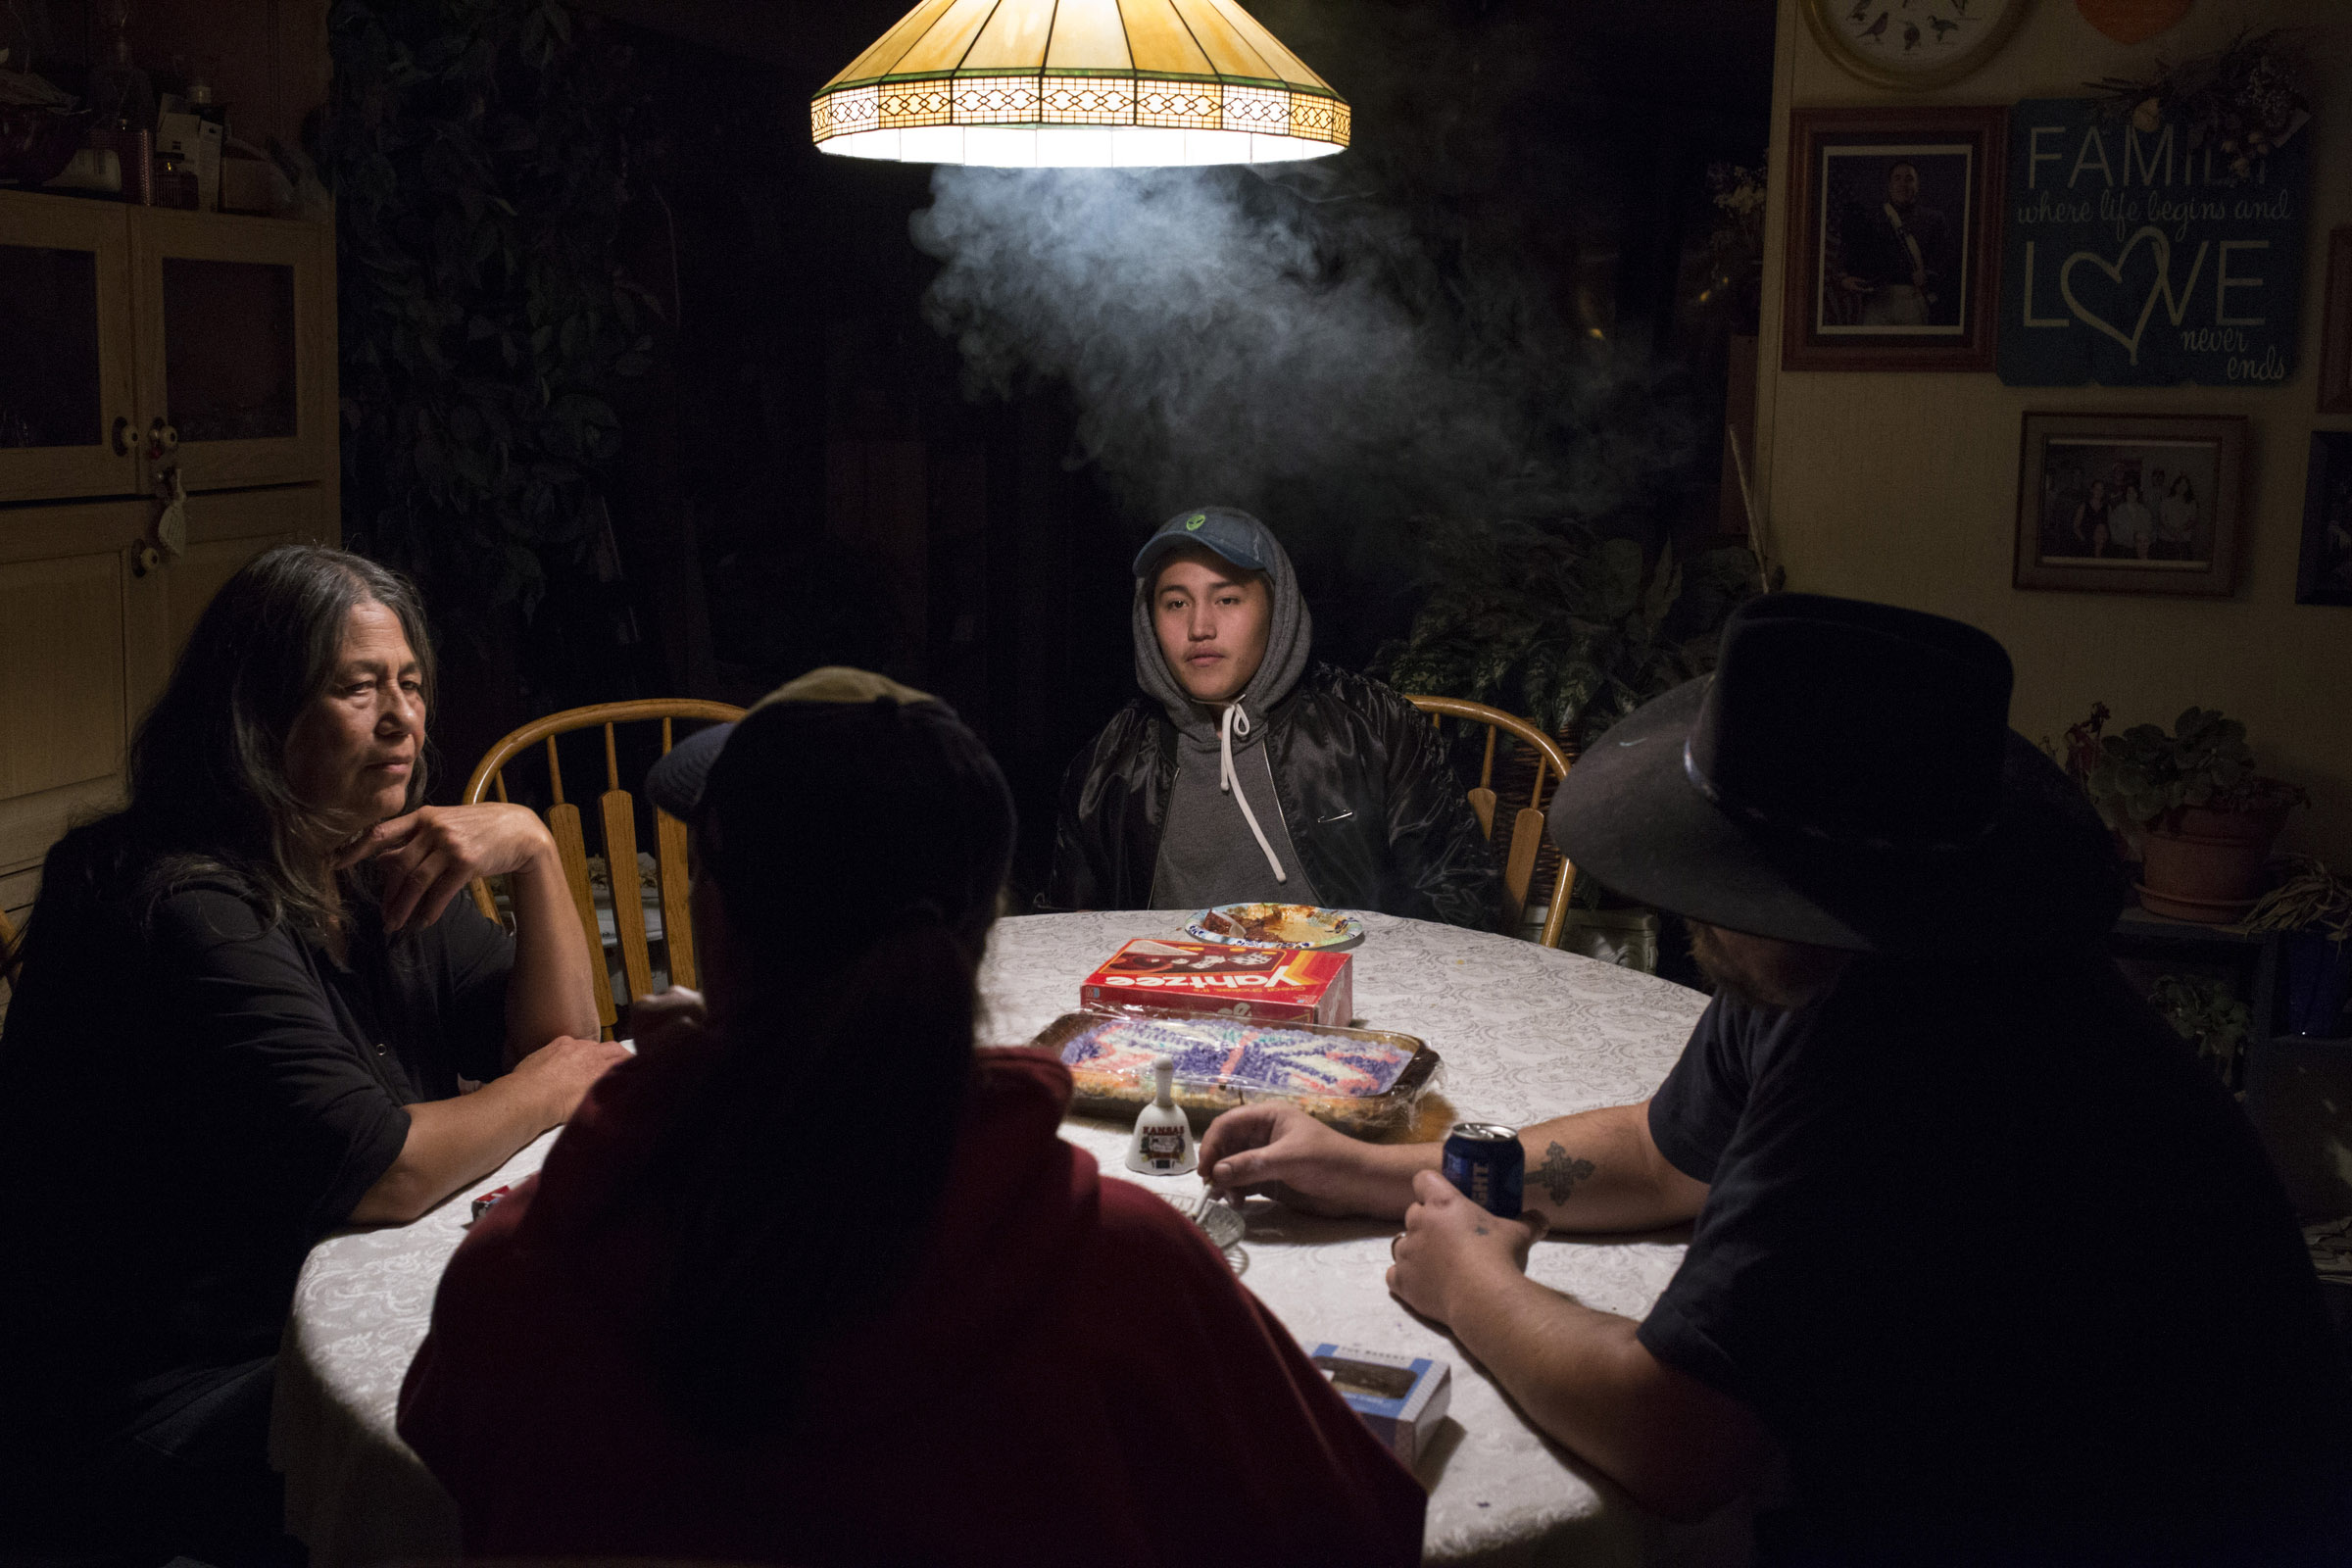 Xavier Smith, 17, sits at the kitchen table with his grandmother (left), mother (center), and his mother's boyfriend (right) at his grandmother's home in Pablo, Montana, on Saturday, October 21, 2017. (Photo by Brittany Greeson)